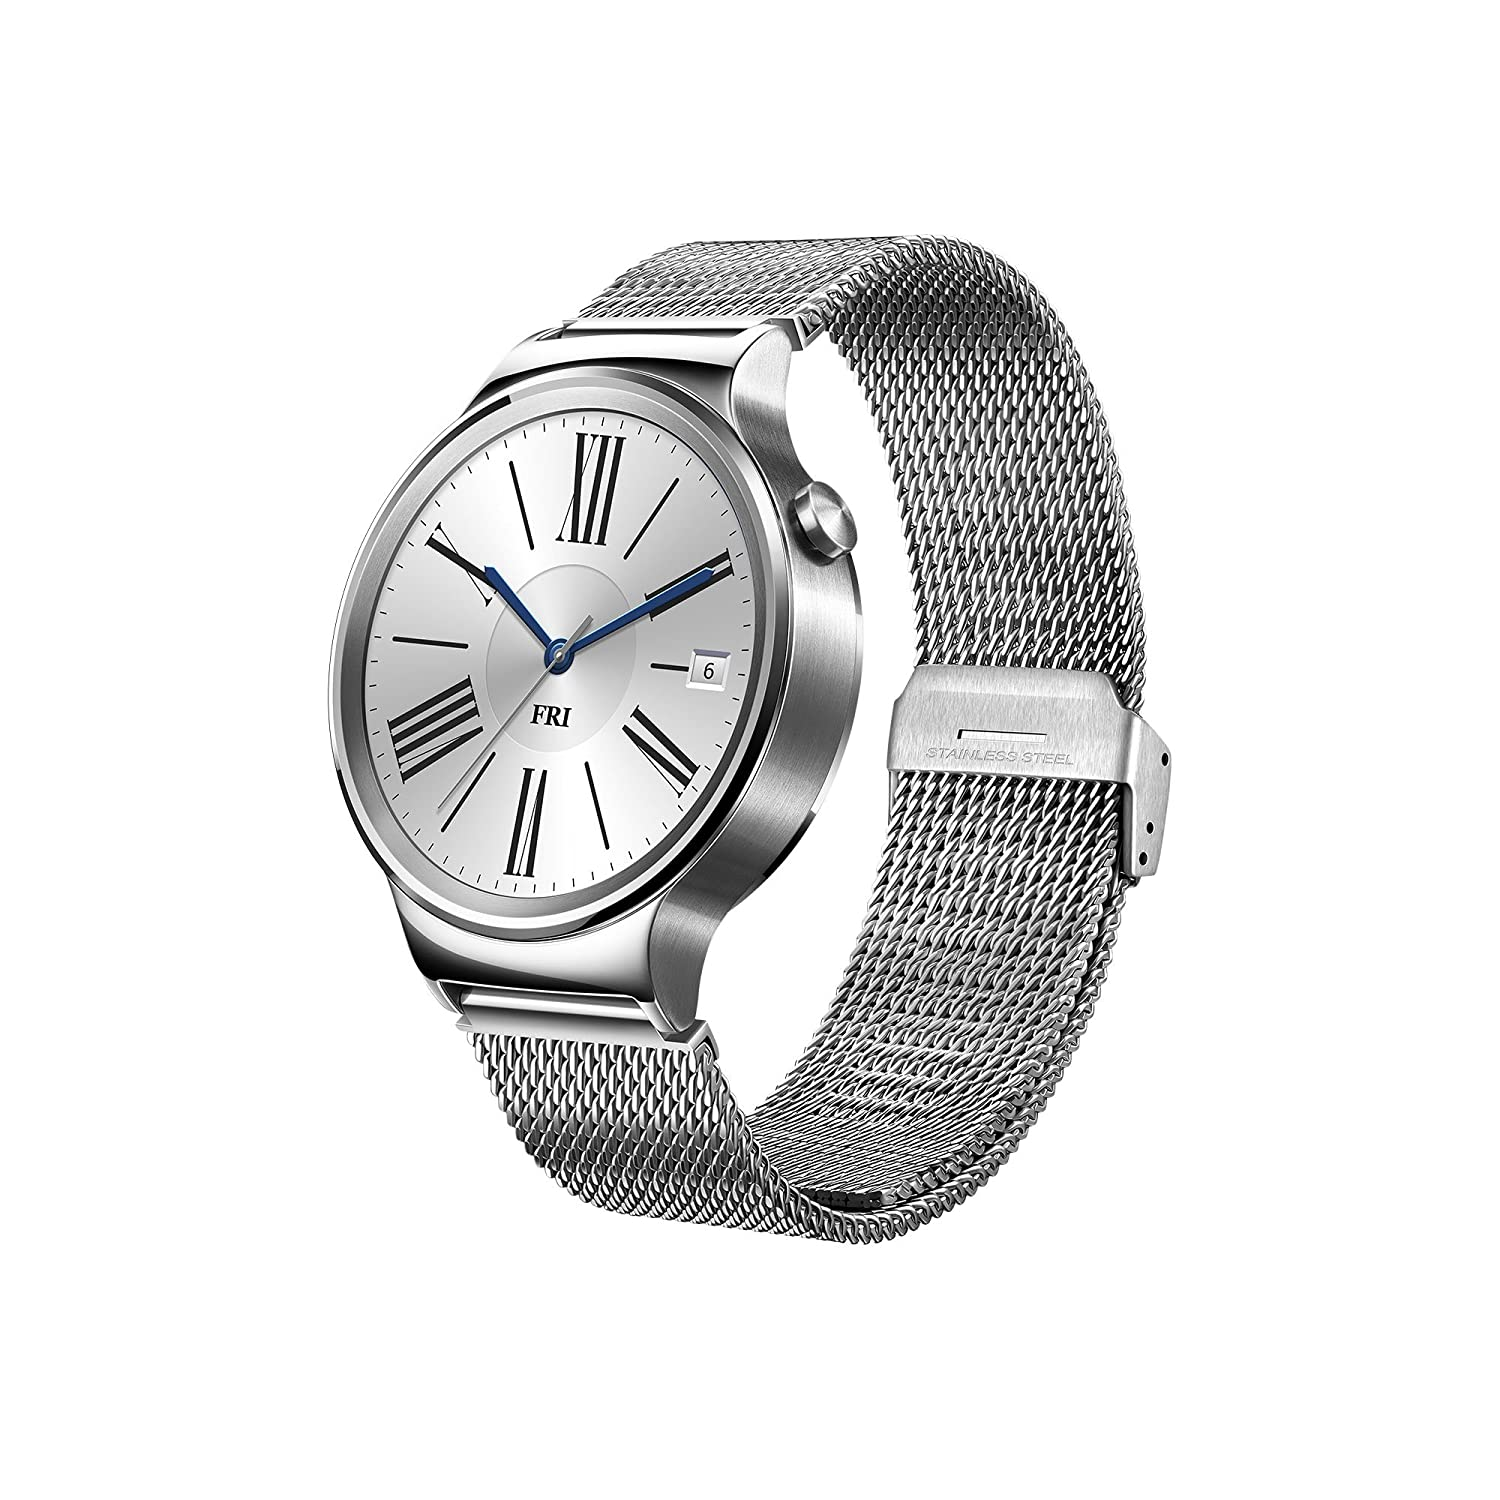 Huawei W1 Stainless Steel Classic Smartwatch with Steel Mesh Strap [Energy  Class A+++]